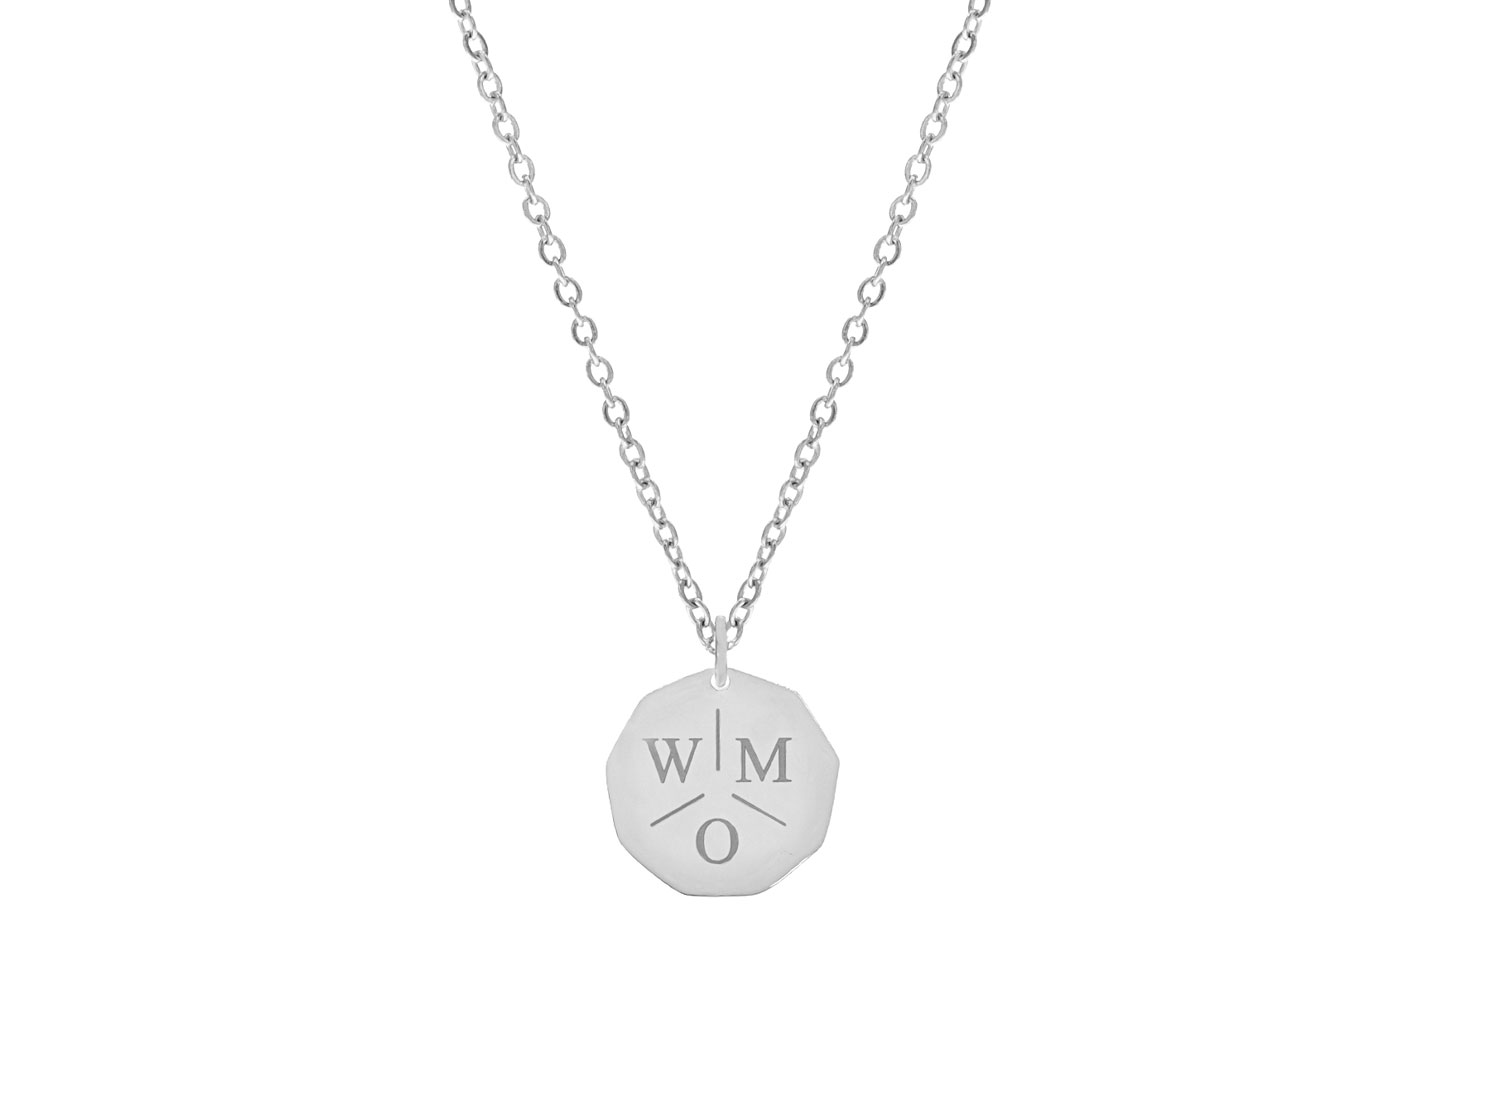 Ketting drie letters